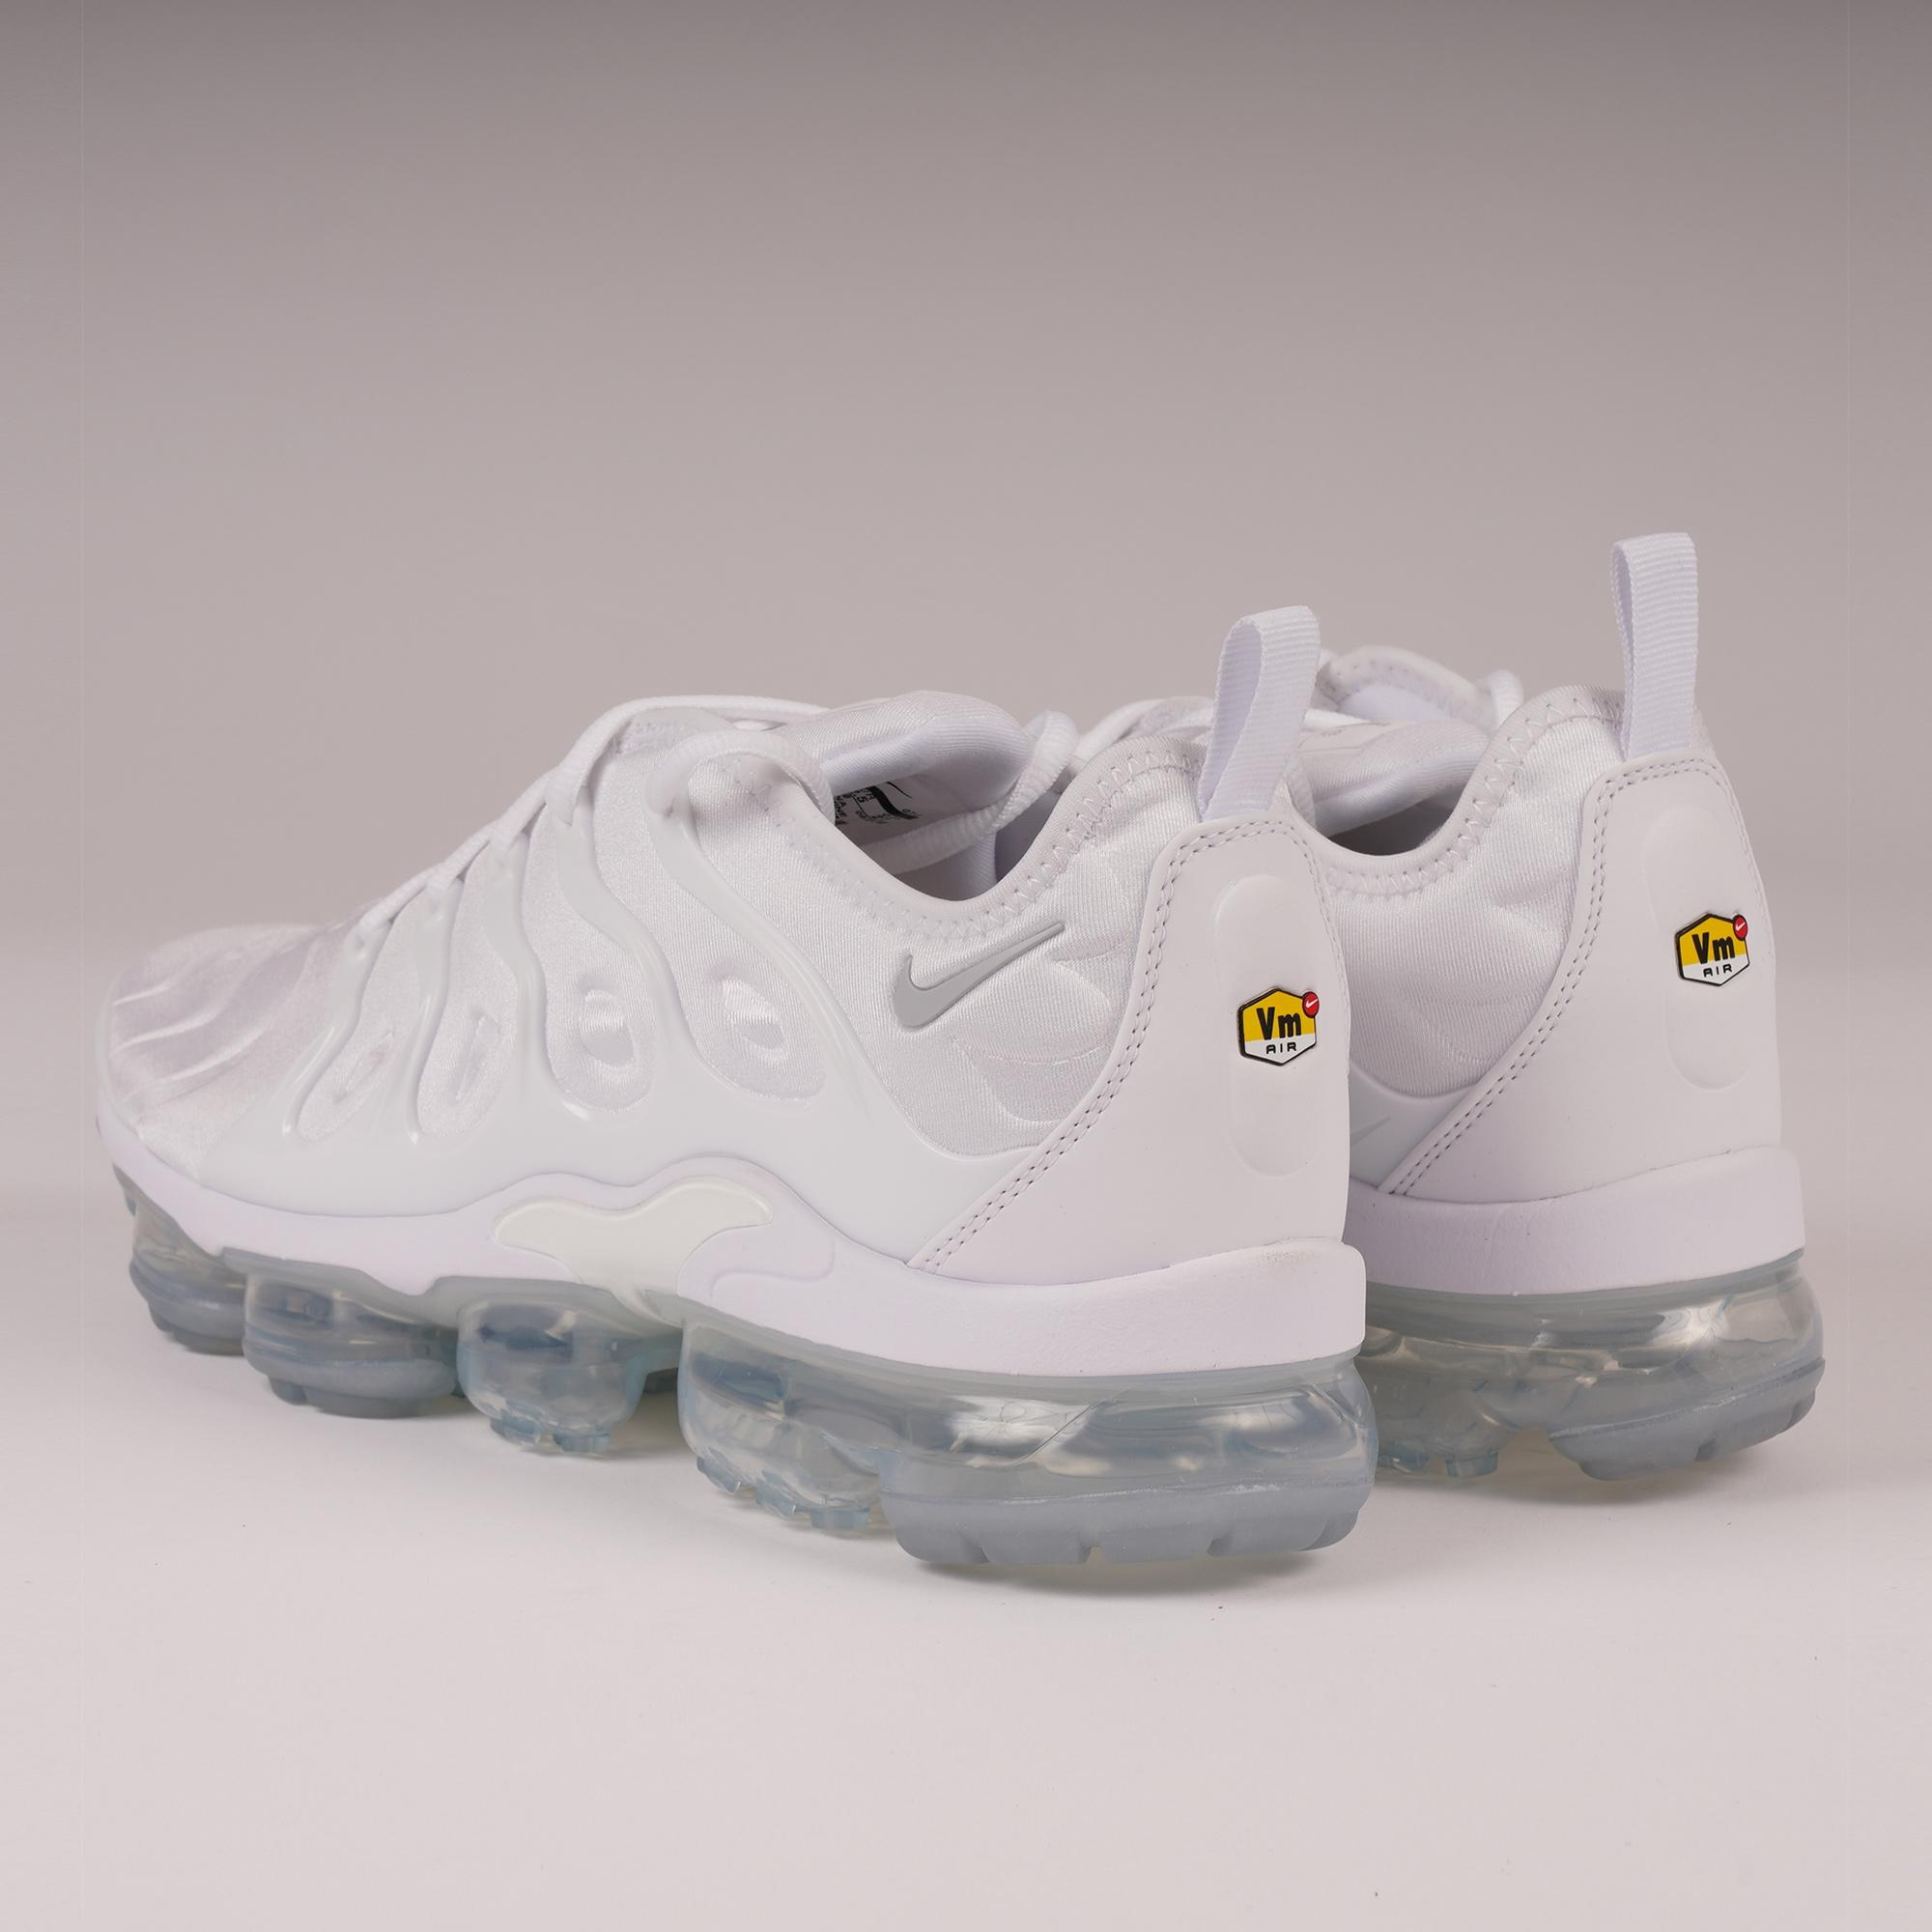 6f9ea62668d180 Lyst - Nike Air Vapormax Plus - White   Pure Platinum in White for Men